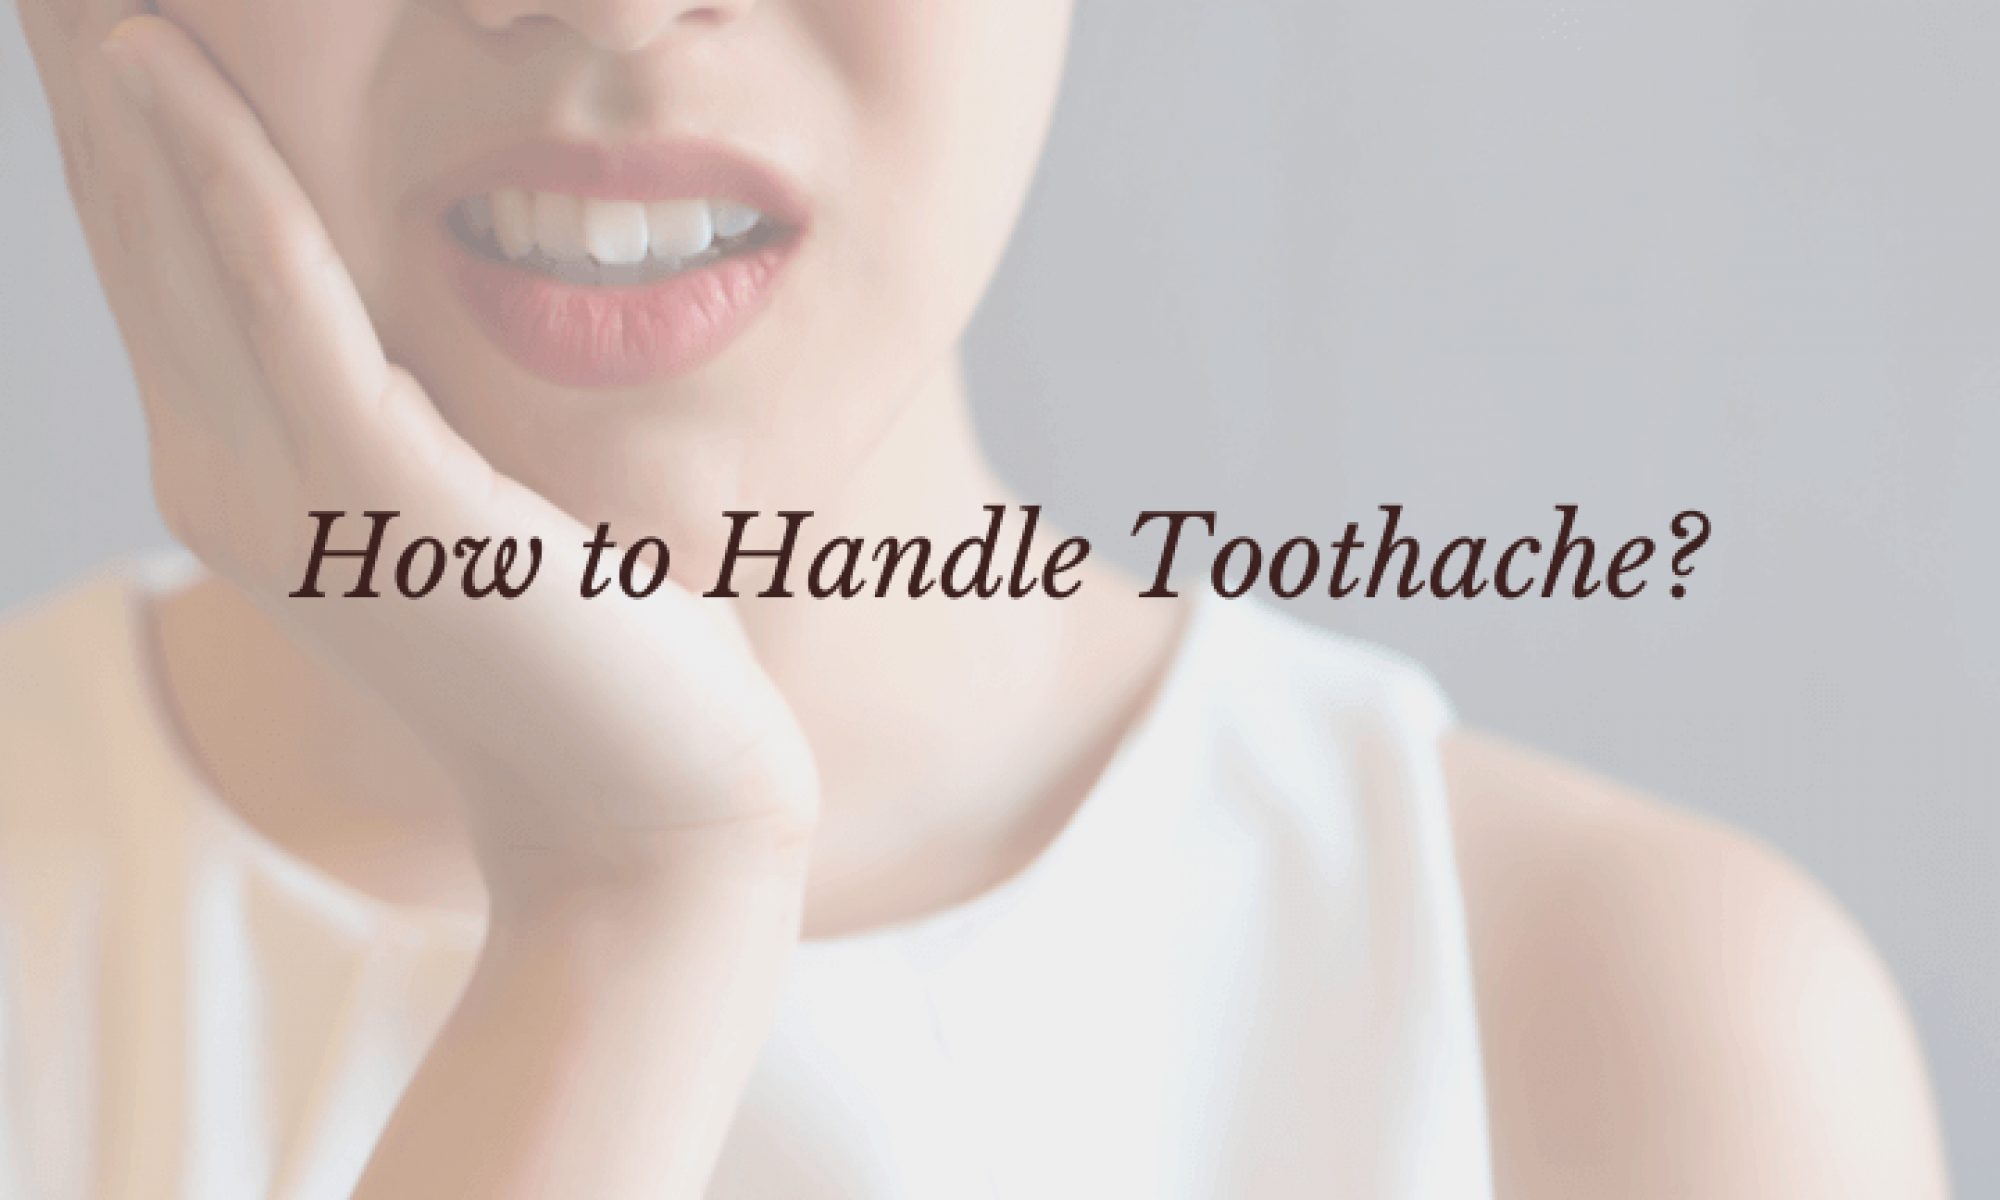 How to handle toothache (1)